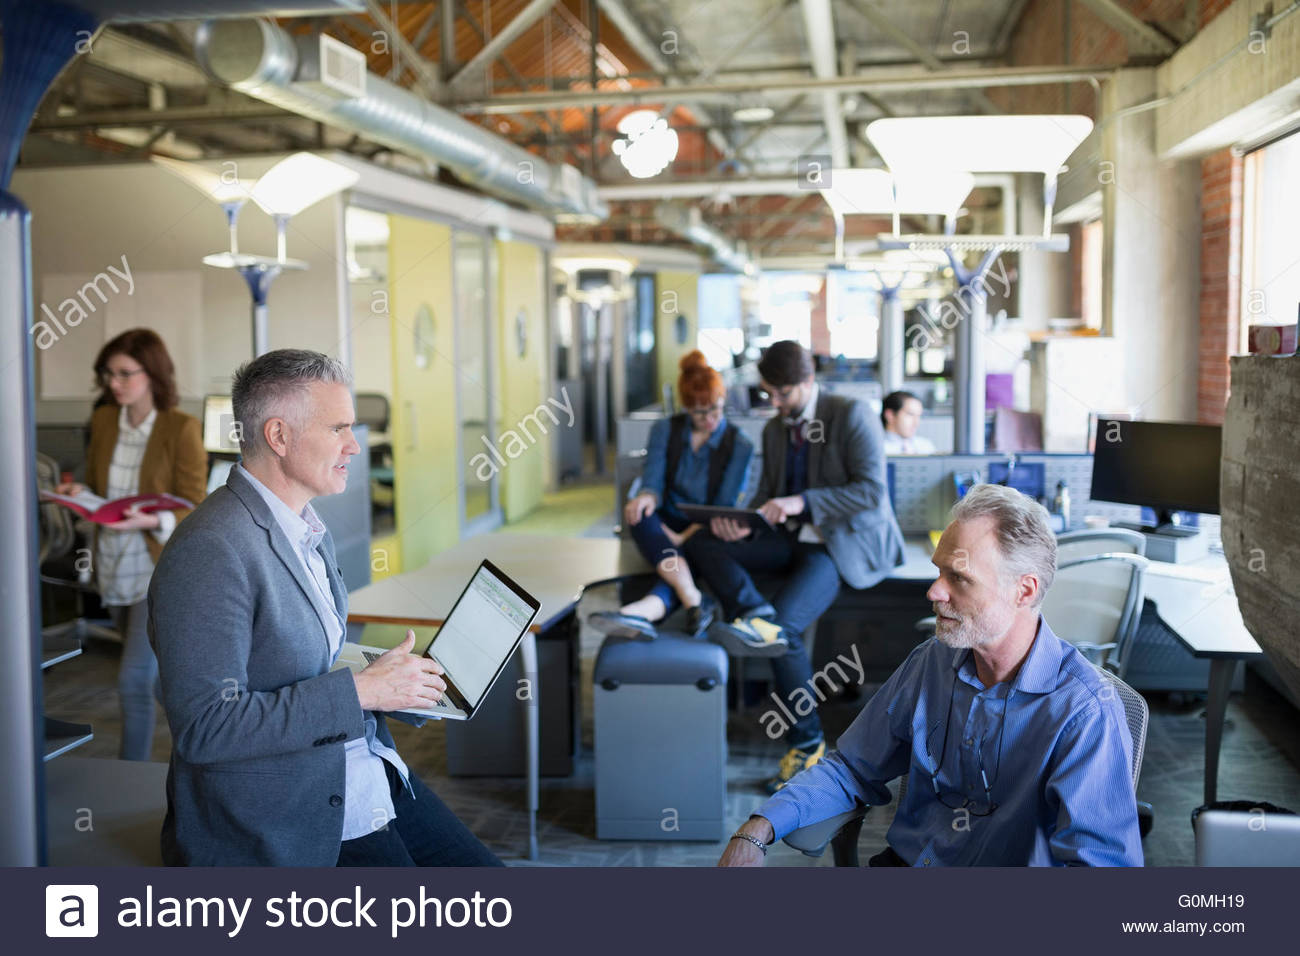 Business people working in open plan office - Stock Image